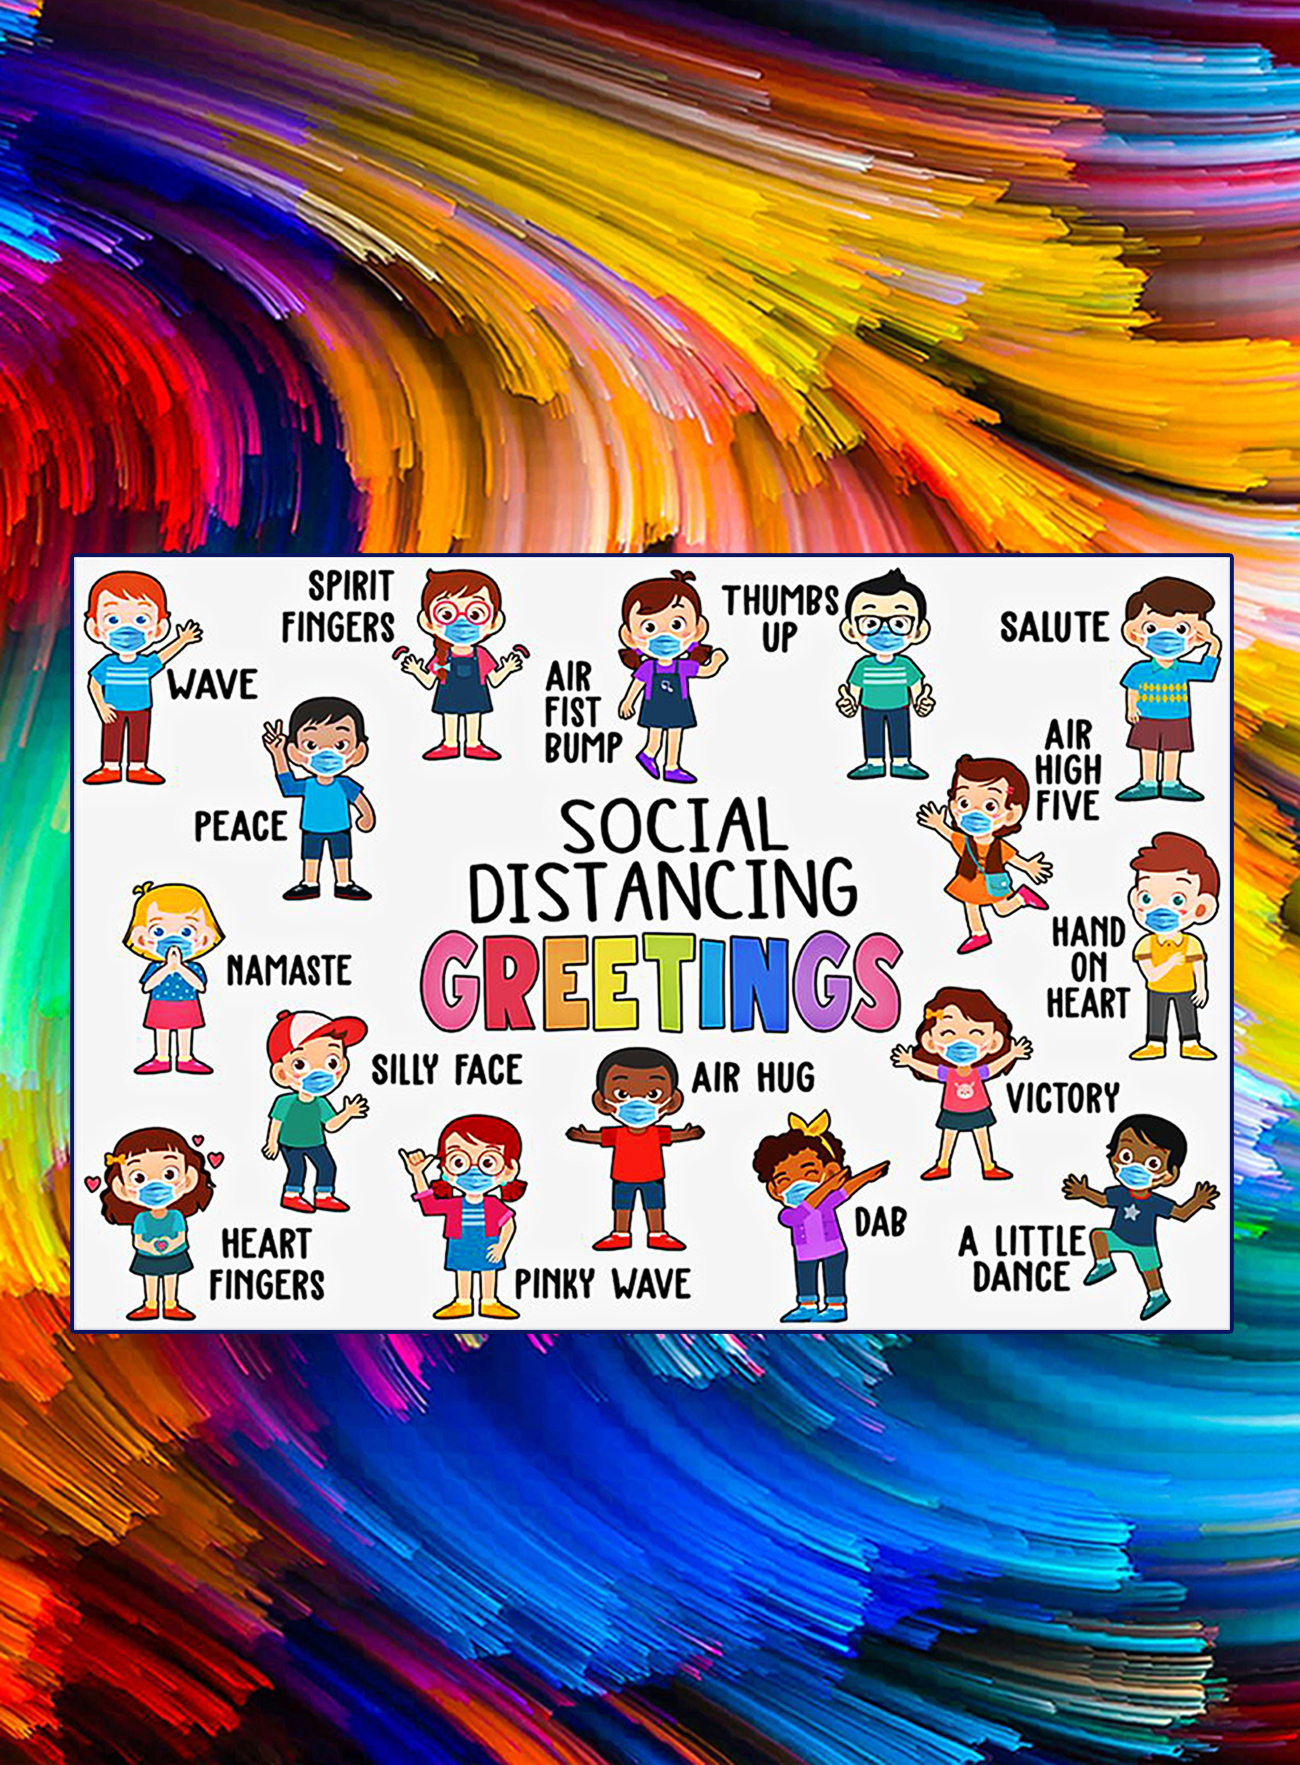 Social distancing greetings classroom poster - A1